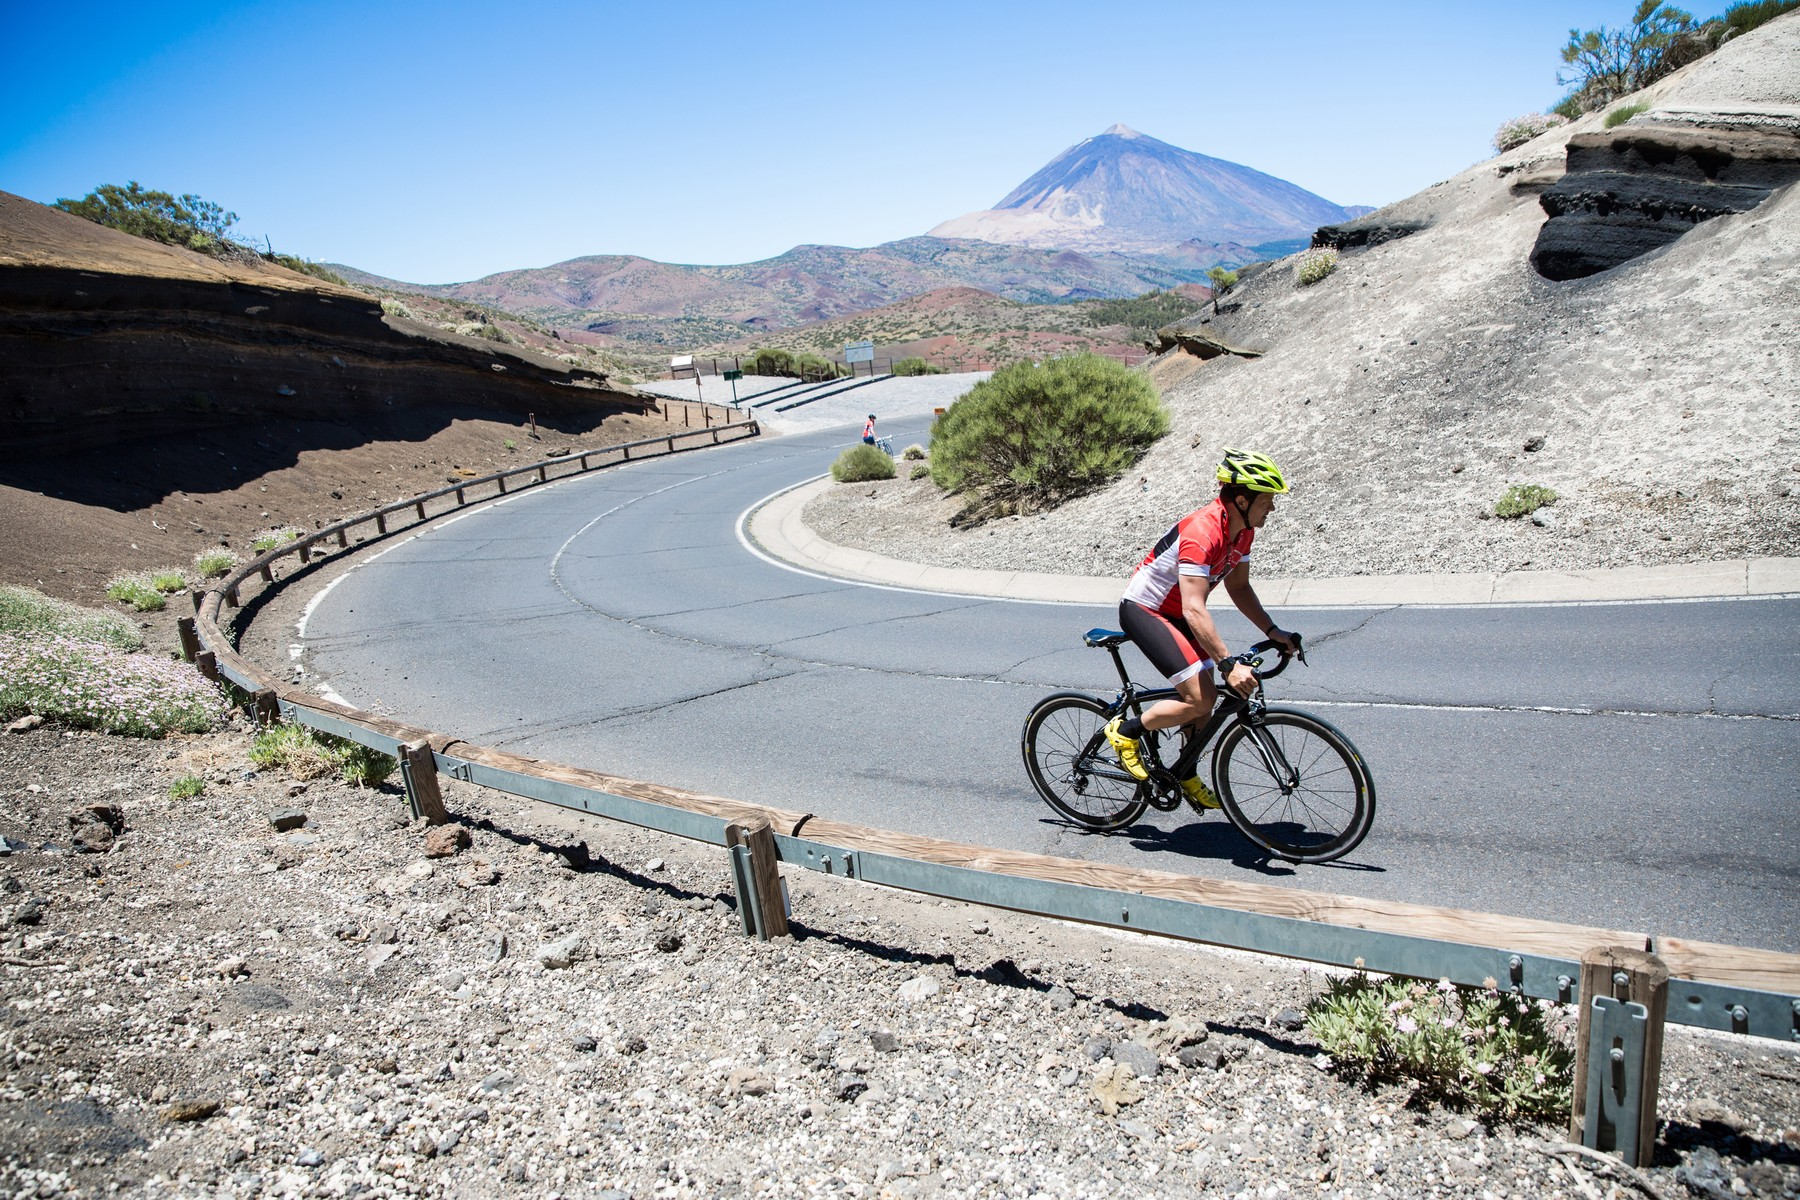 Male cyclist cycling up winding road, Tenerife, Canary Islands, Spain, Image: 295467126, License: Rights-managed, Restrictions: Specifically, you may not use the Images in ways or contexts that might reasonably be construed as pornographic, defamatory, libellous or otherwise unlawful; Specifically, you may not use images depicting any model in any unduly controversial or unflattering context, unless accompanied with a statement indicating that the person is a model and the images are being used for illustrative purposes only., Model Release: yes, Credit line: Profimedia, Cultura RM